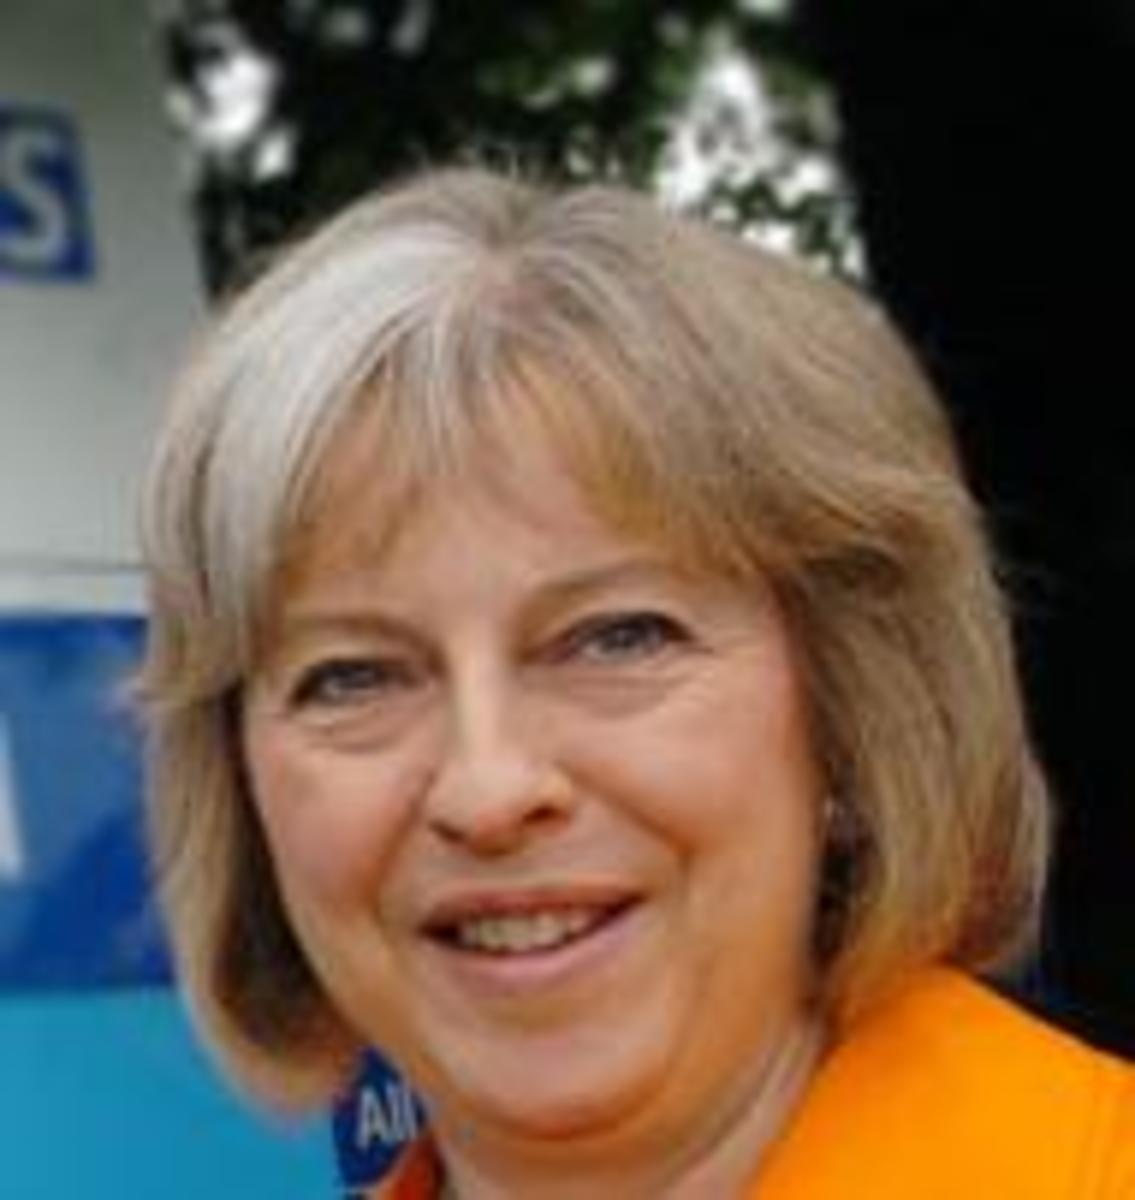 Theresa May whom Tony Blair has described as a lightweight